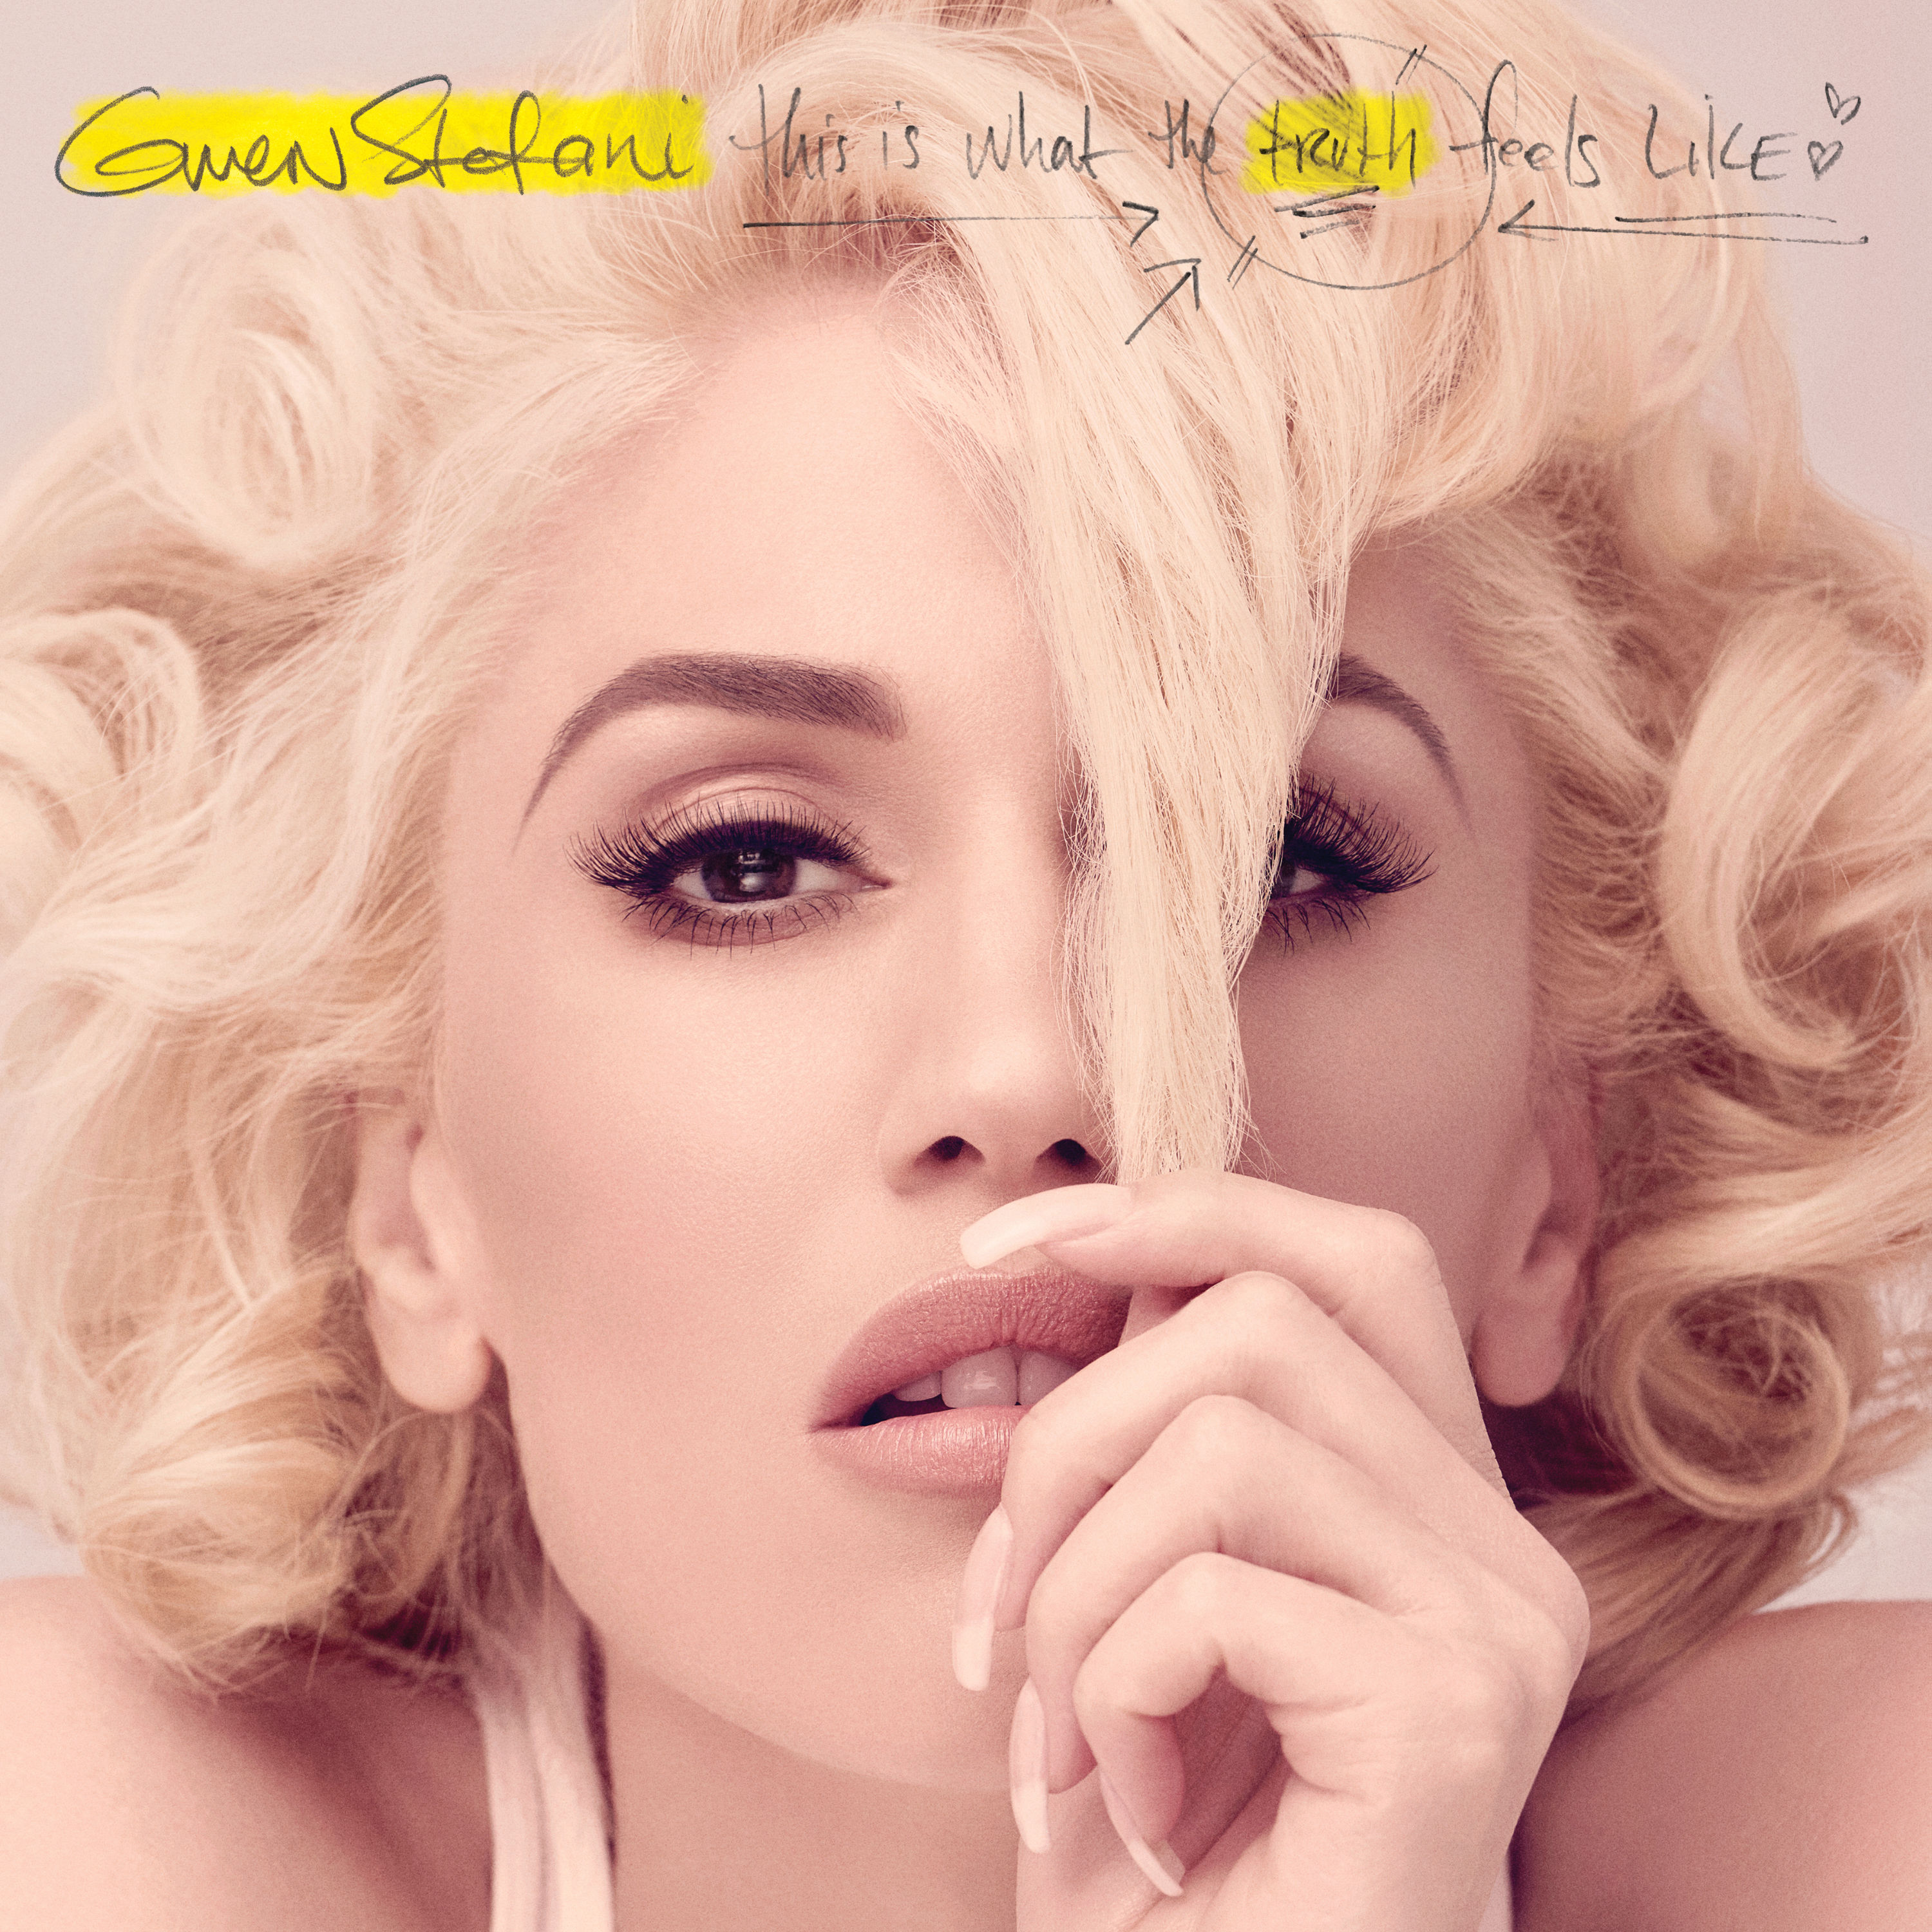 Resultado de imagem para GWEN STEFANI THIS IS WHAT THE TRUTH FEELS LIKE